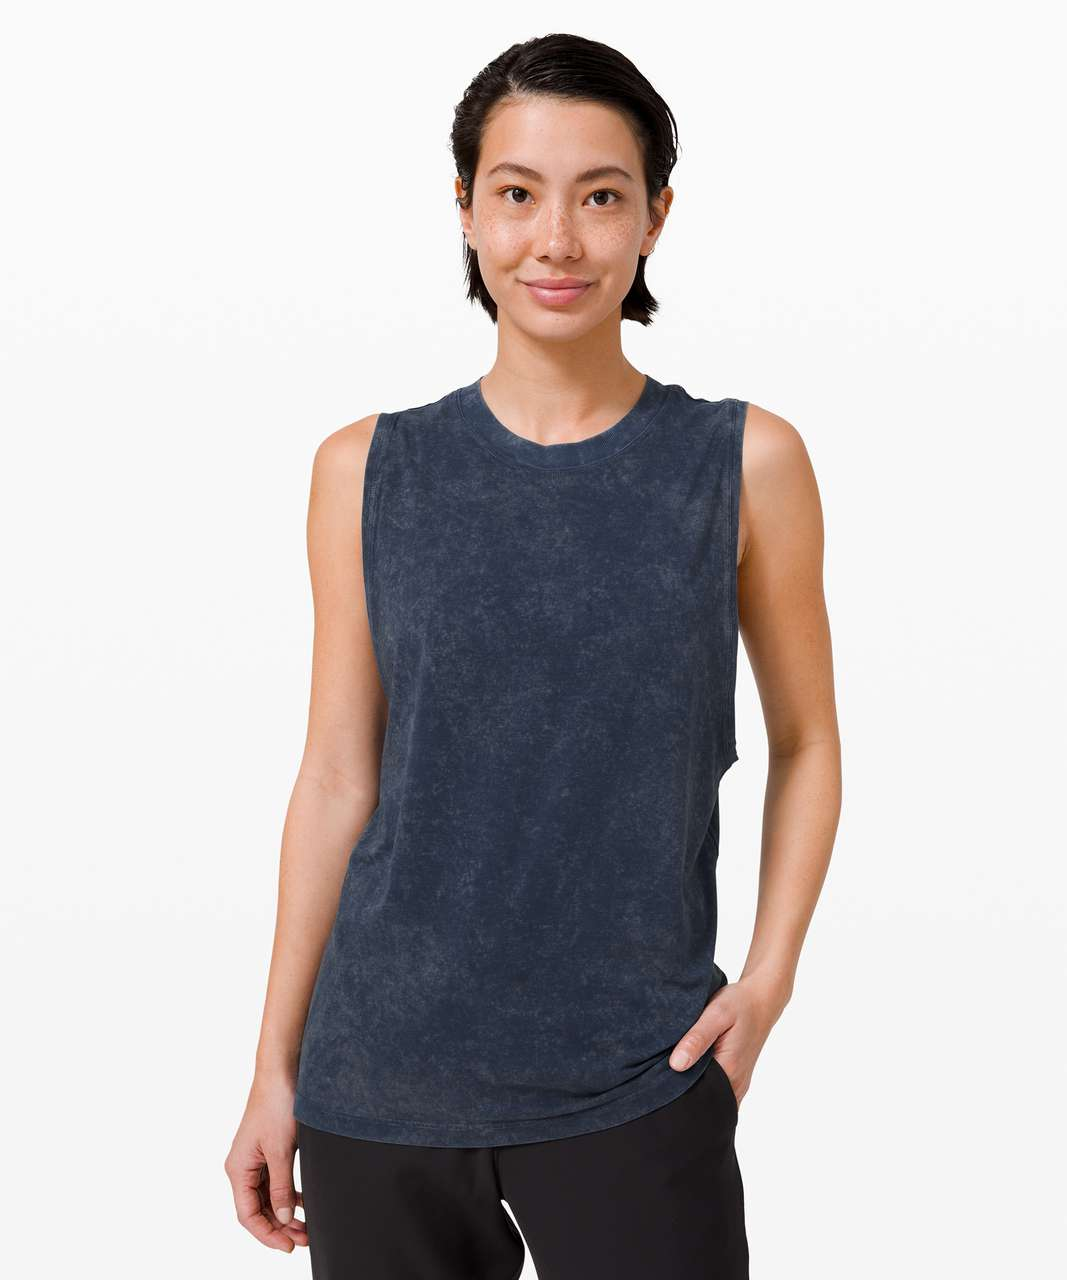 Lululemon All Yours Boyfriend Tank - Cloudy Wash True Navy